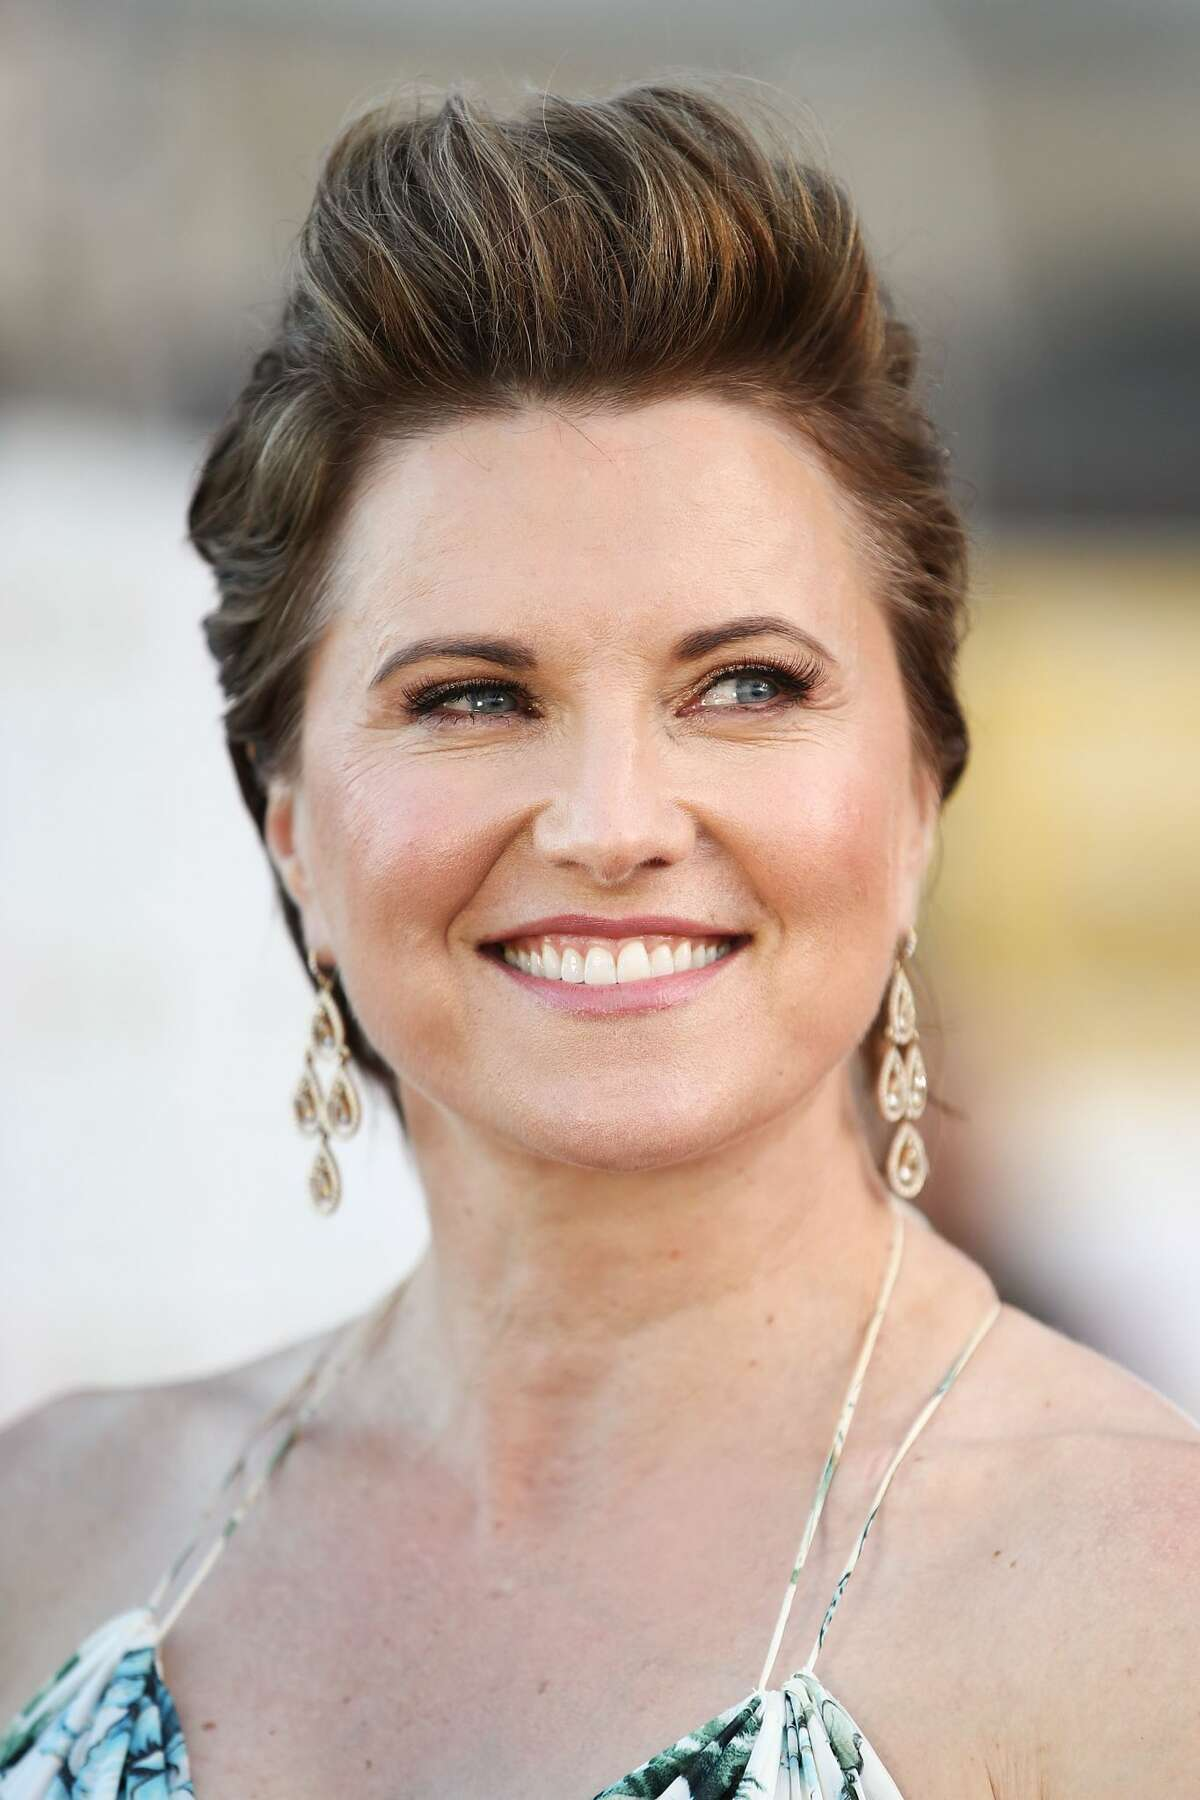 SYDNEY, AUSTRALIA - MARCH 02: Lucy Lawless arrives ahead of the Australian LGBTI Awards 2017 at Sydney Opera House on March 2, 2017 in Sydney, Australia. (Photo by Brendon Thorne/Getty Images)